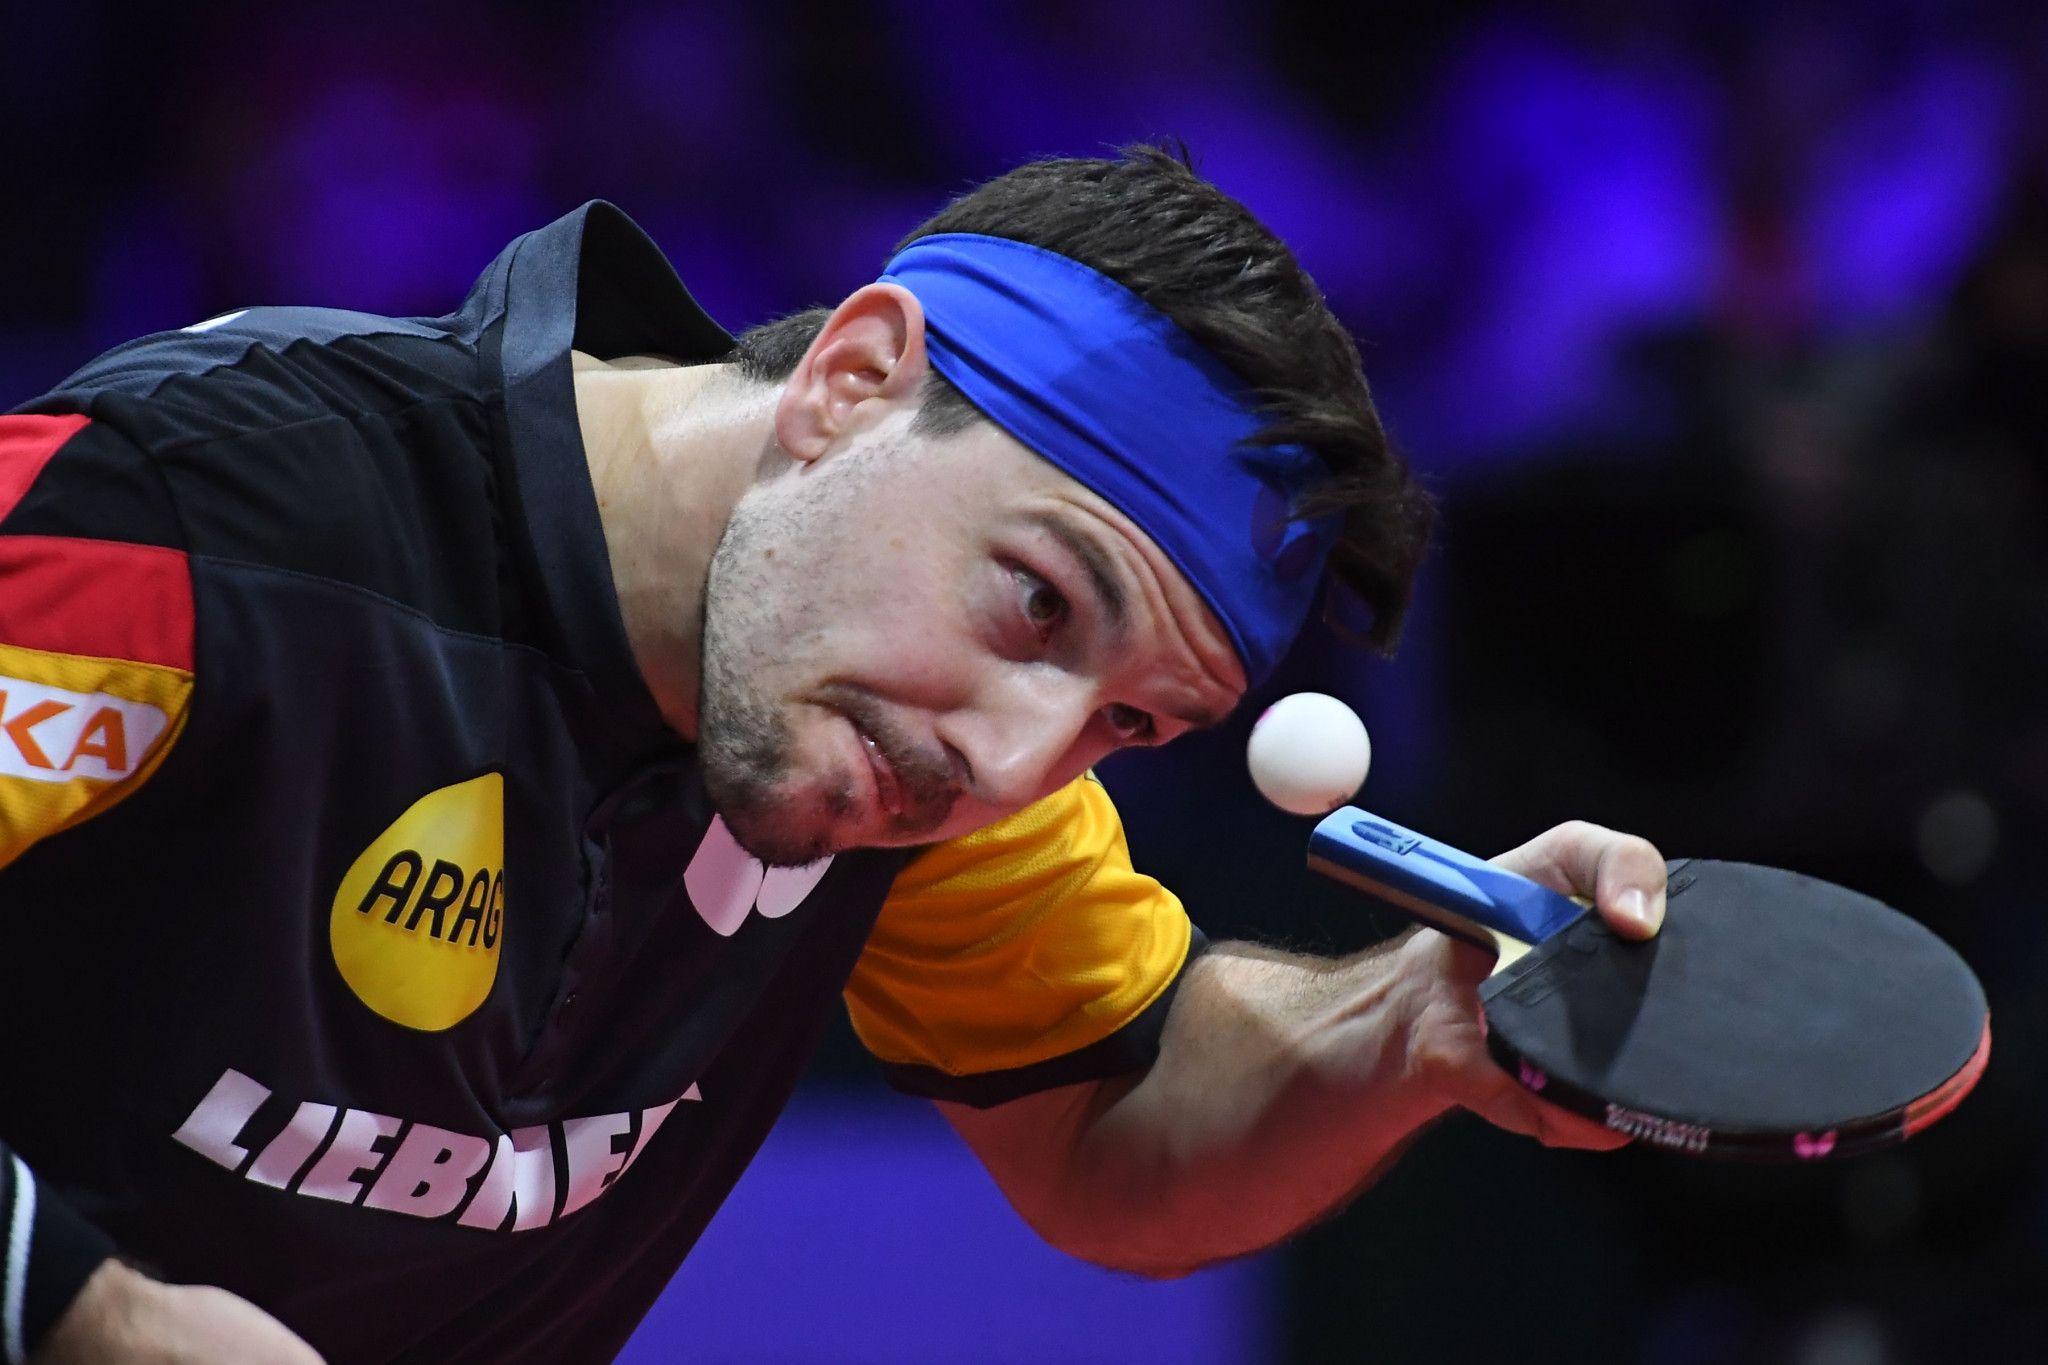 Table tennis player Timo Boll will be among Germany's main medal hopes at the 2019 European Games ©Getty Images